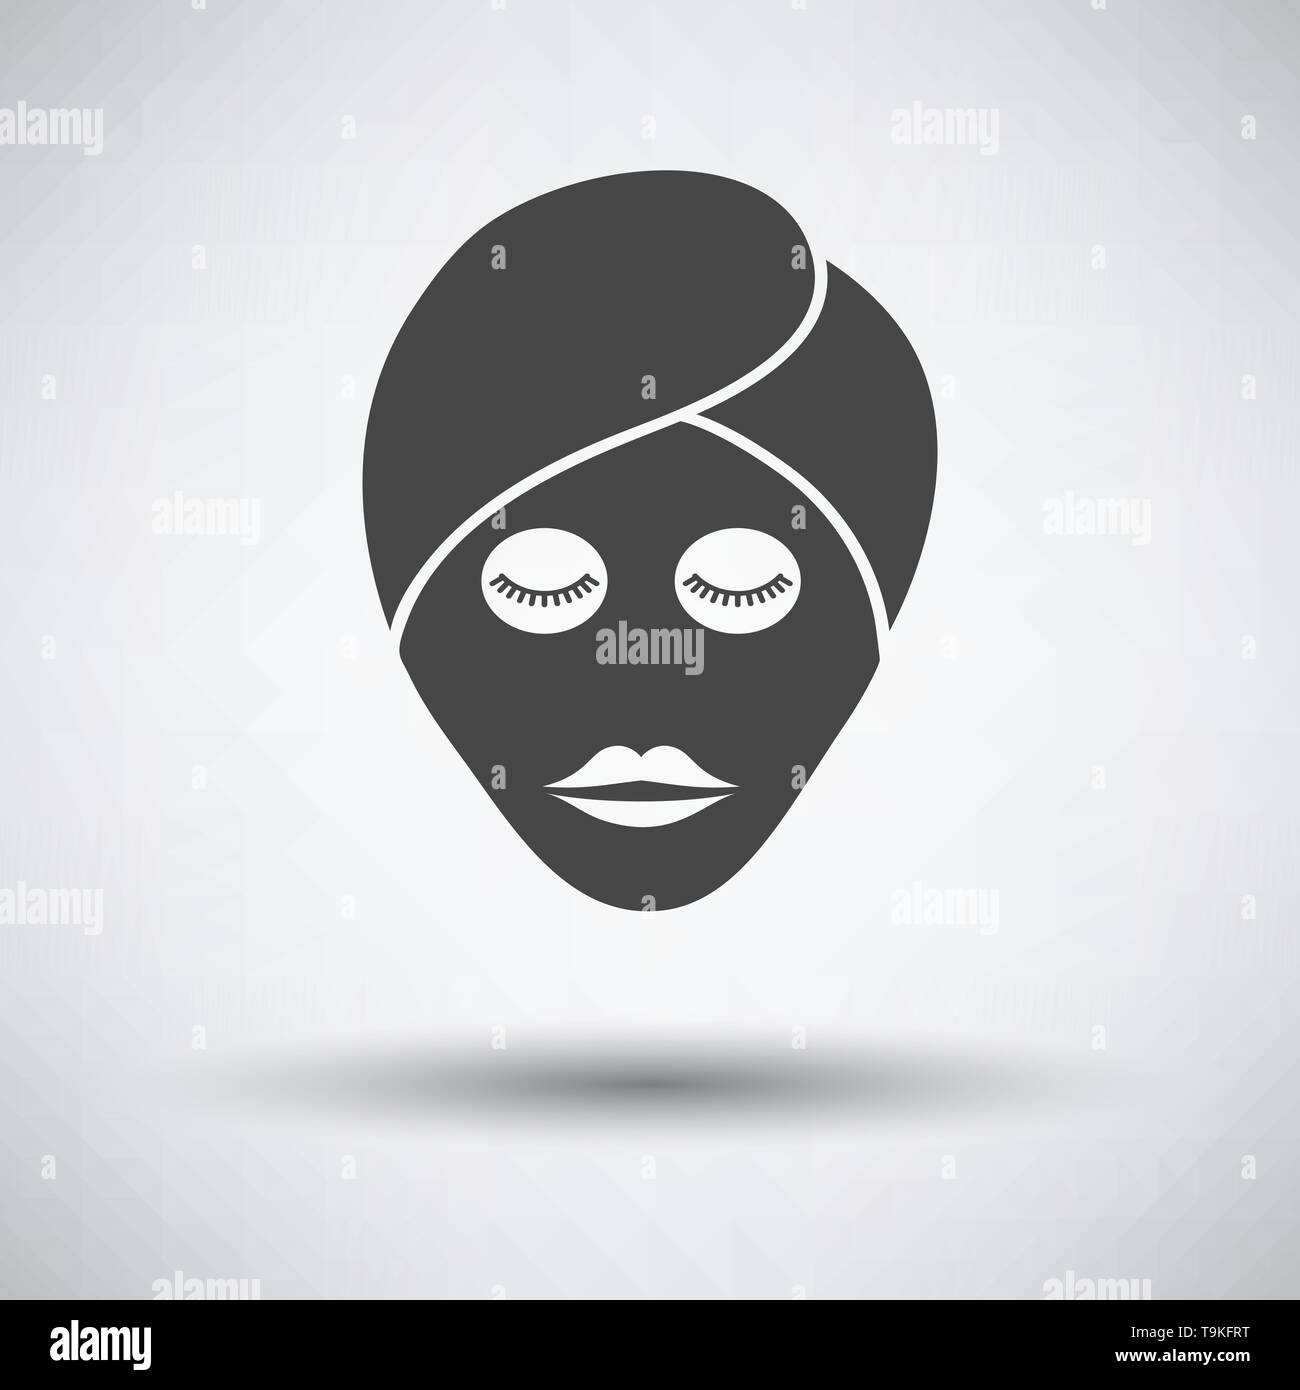 Woman head with moisturizing mask icon on gray background with round shadow. Vector illustration. - Stock Image